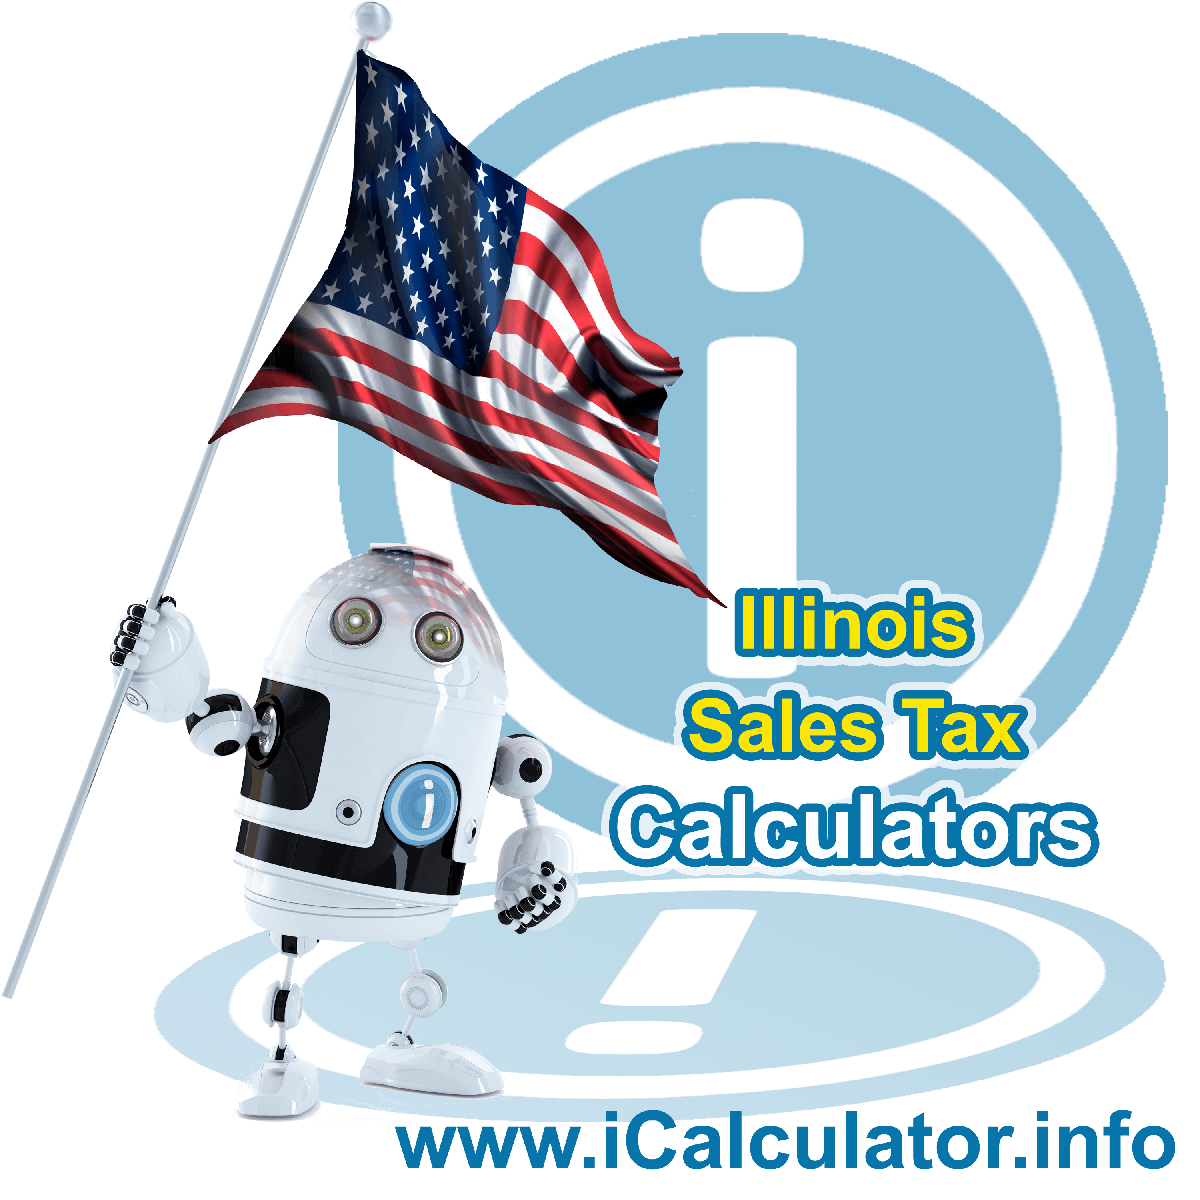 Colona Sales Rates: This image illustrates a calculator robot calculating Colona sales tax manually using the Colona Sales Tax Formula. You can use this information to calculate Colona Sales Tax manually or use the Colona Sales Tax Calculator to calculate sales tax online.